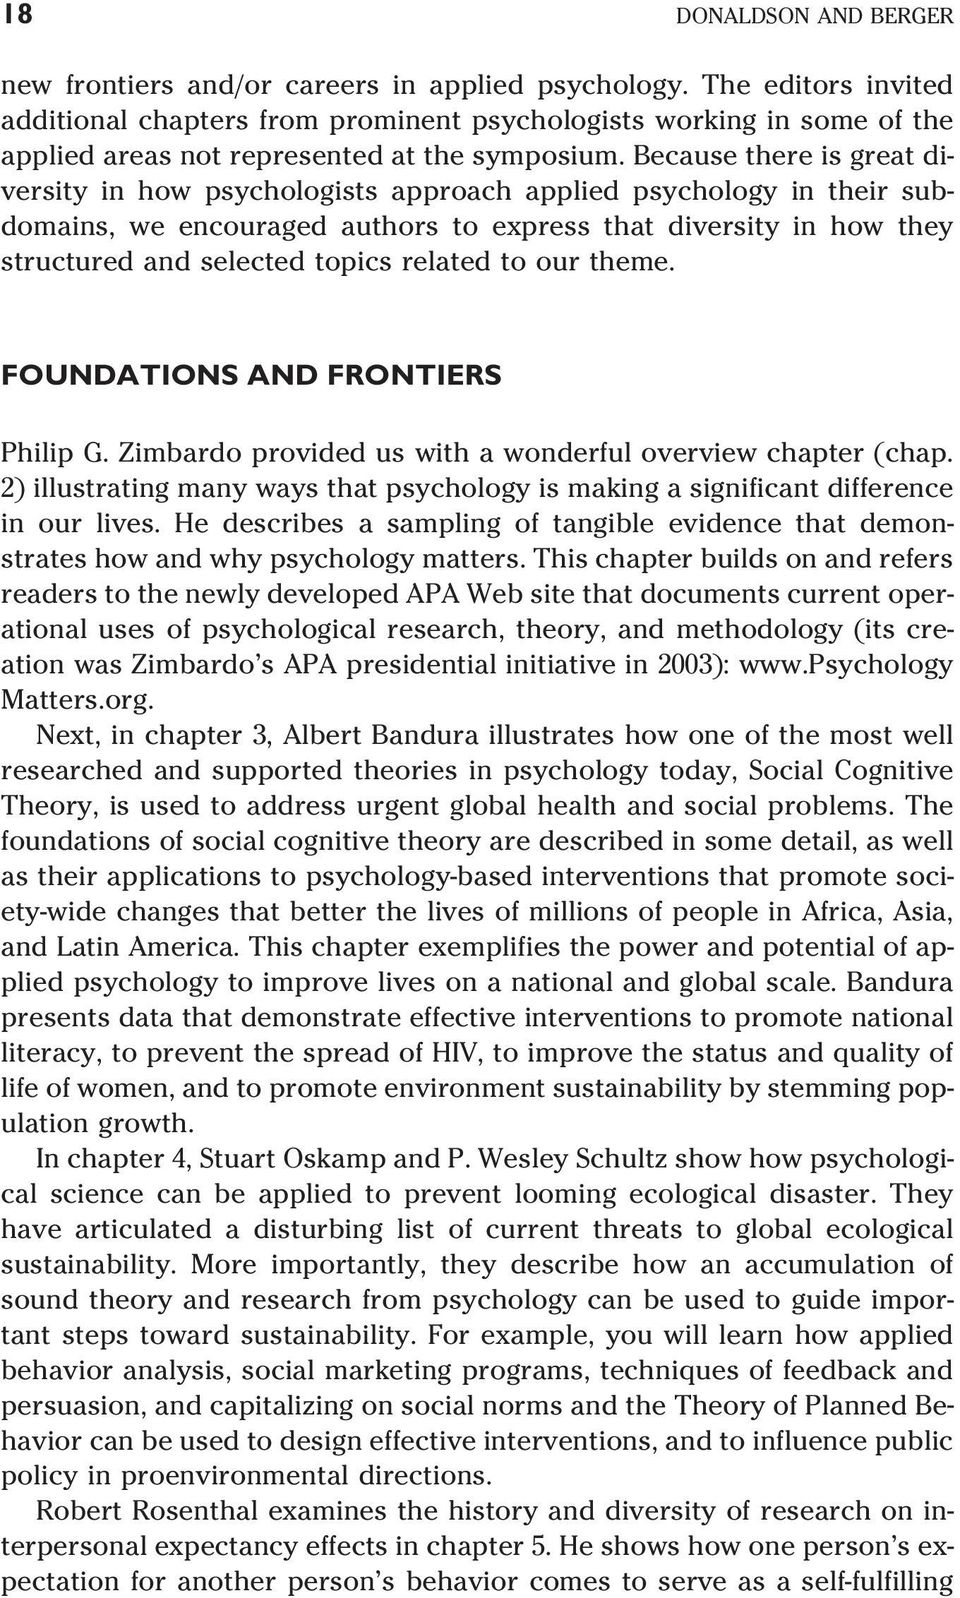 Because there is great diversity in how psychologists approach applied psychology in their subdomains, we encouraged authors to express that diversity in how they structured and selected topics